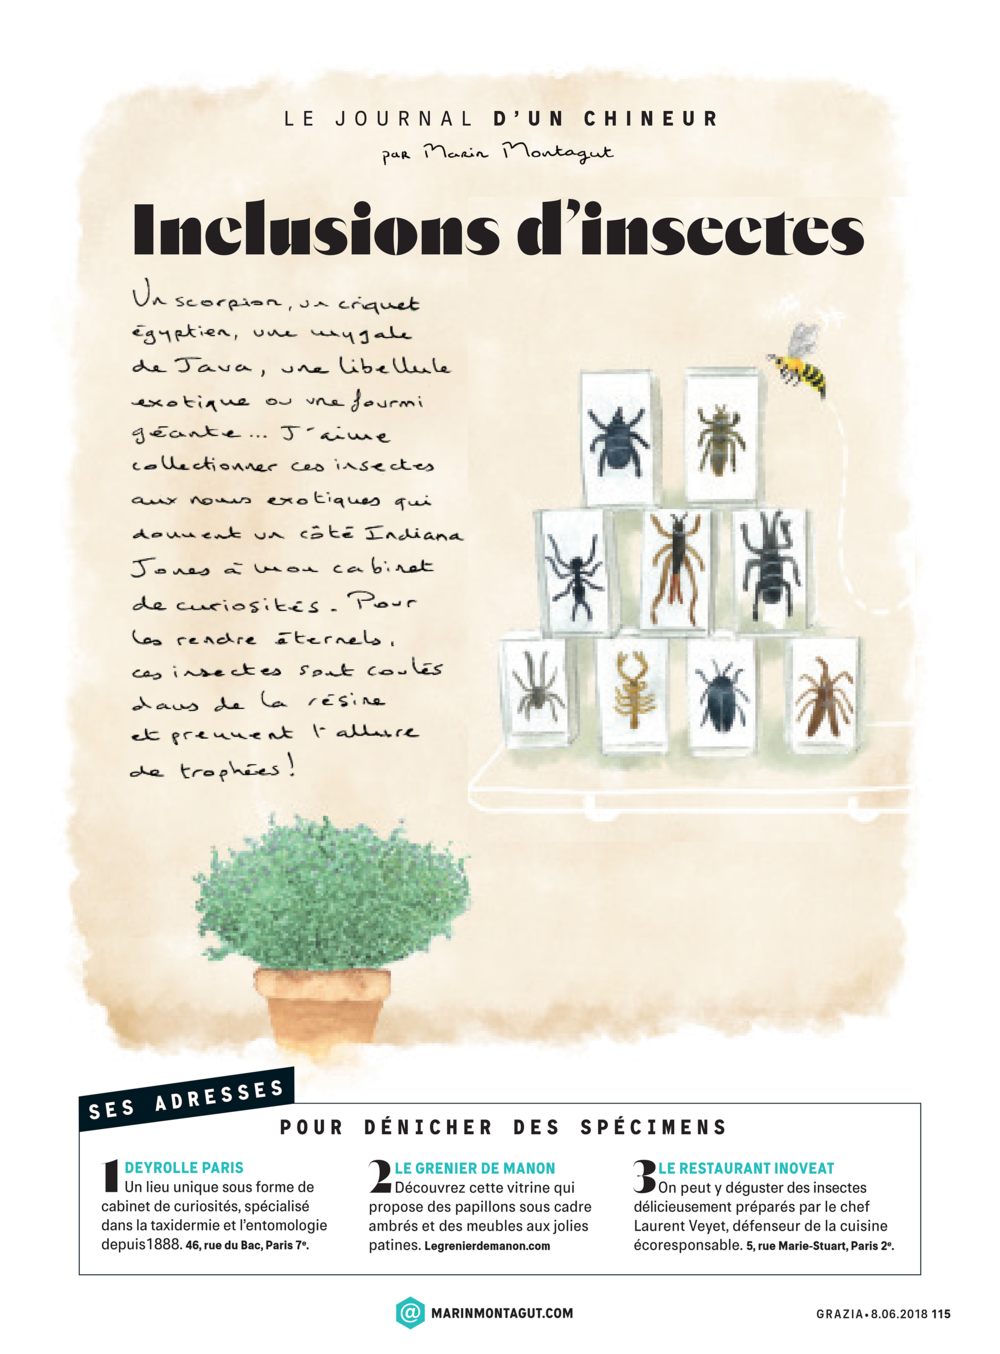 0450_08_06_Inclusions insectes.png